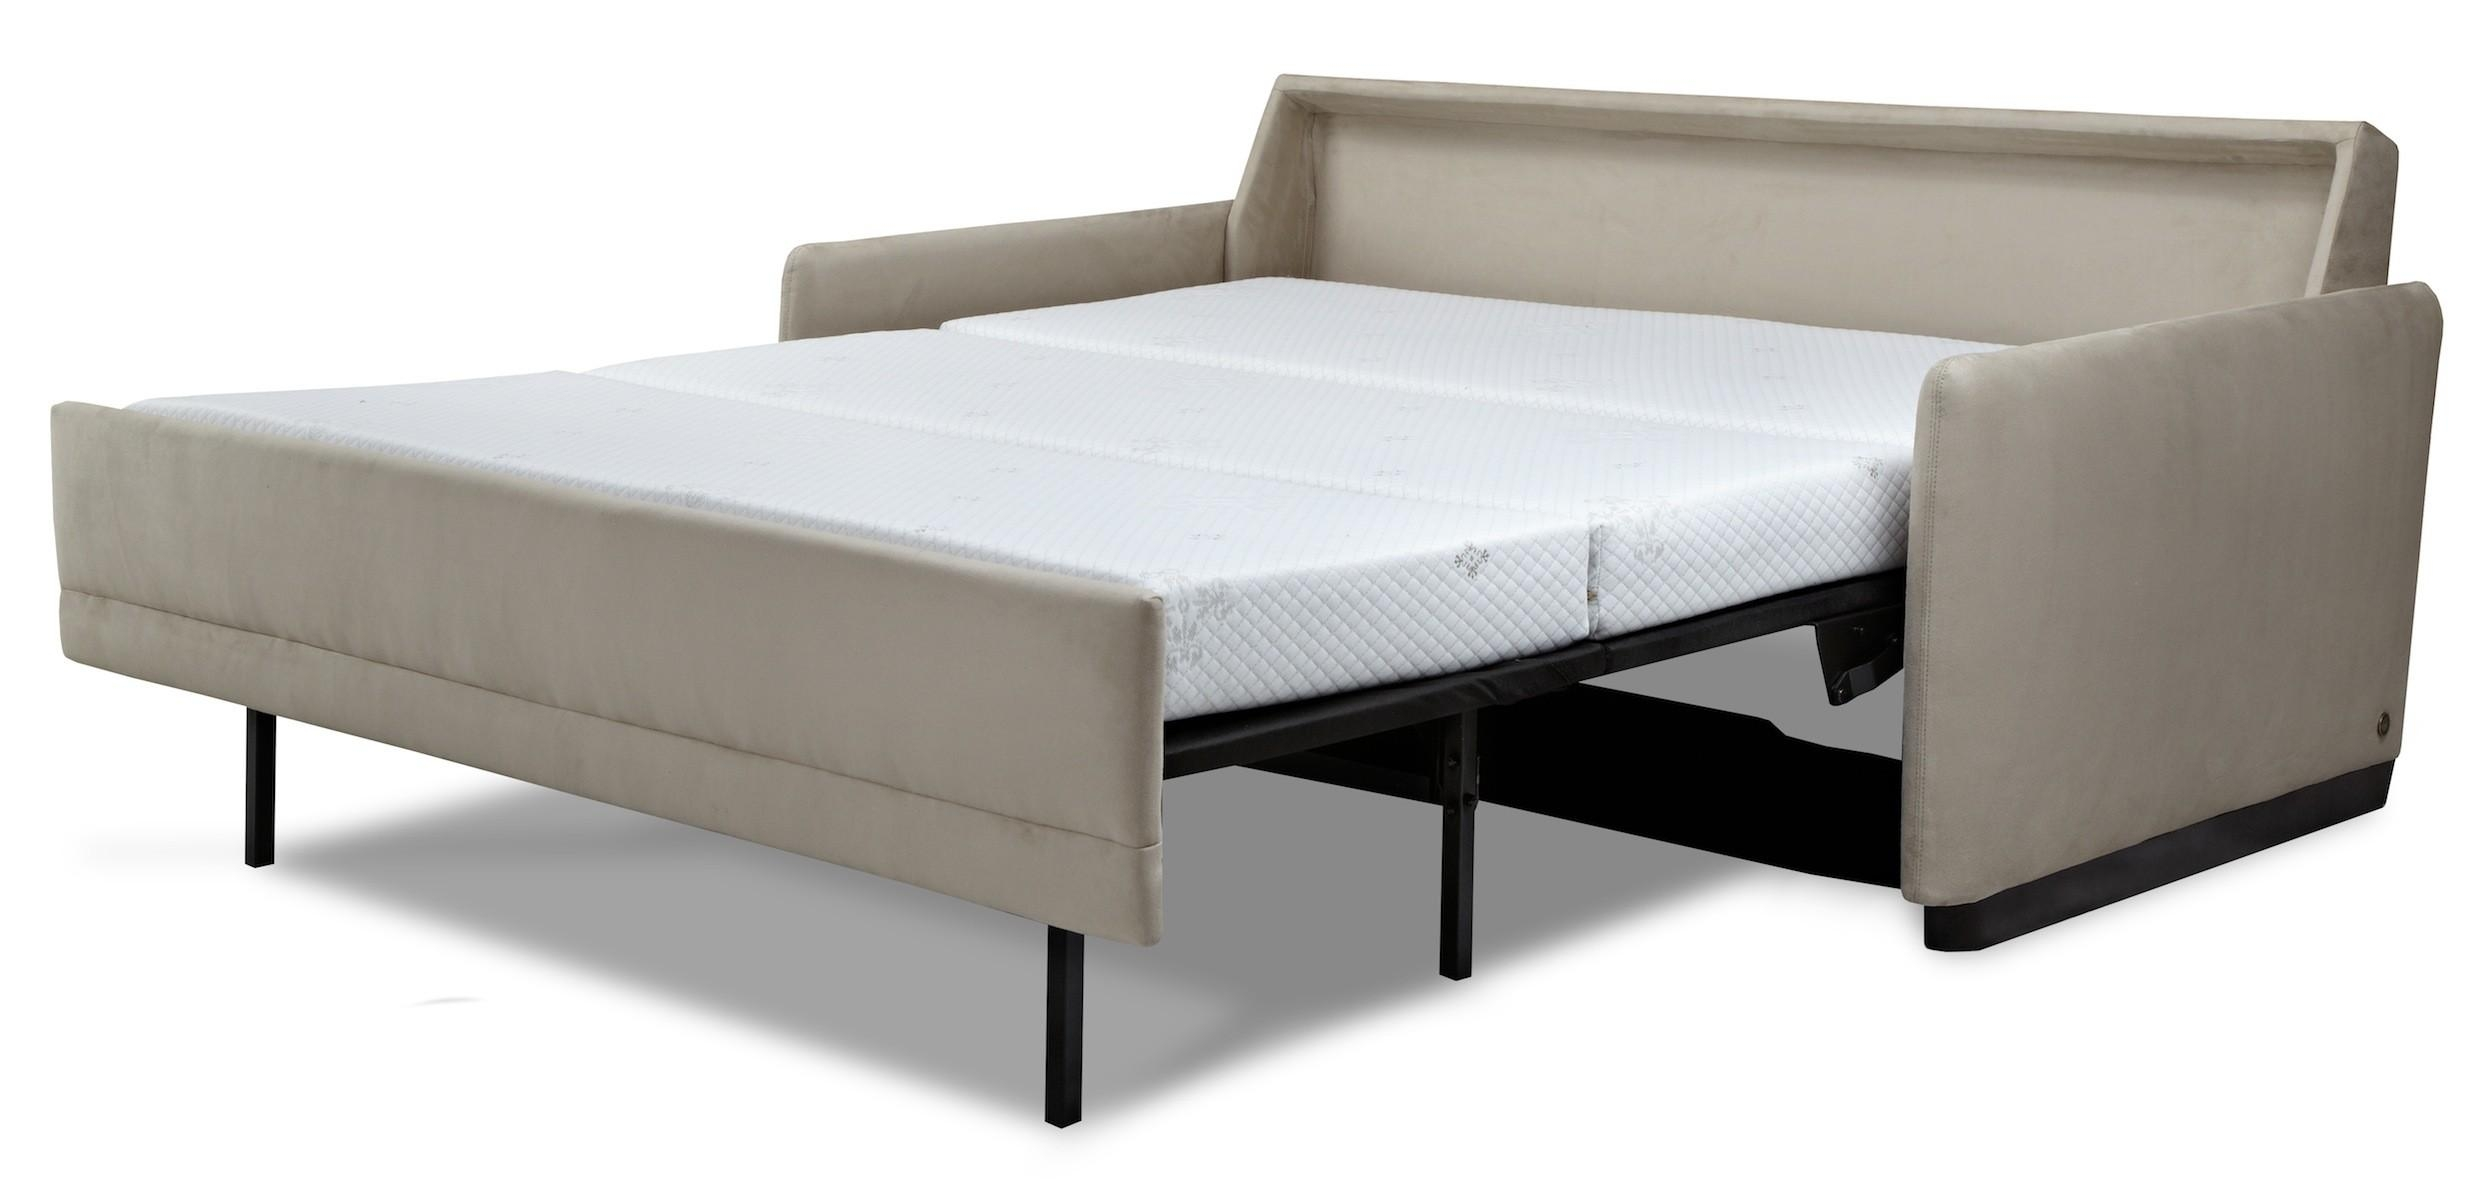 king size sofa bed ikea cheap sleepers loveseat 20 ideas of beds